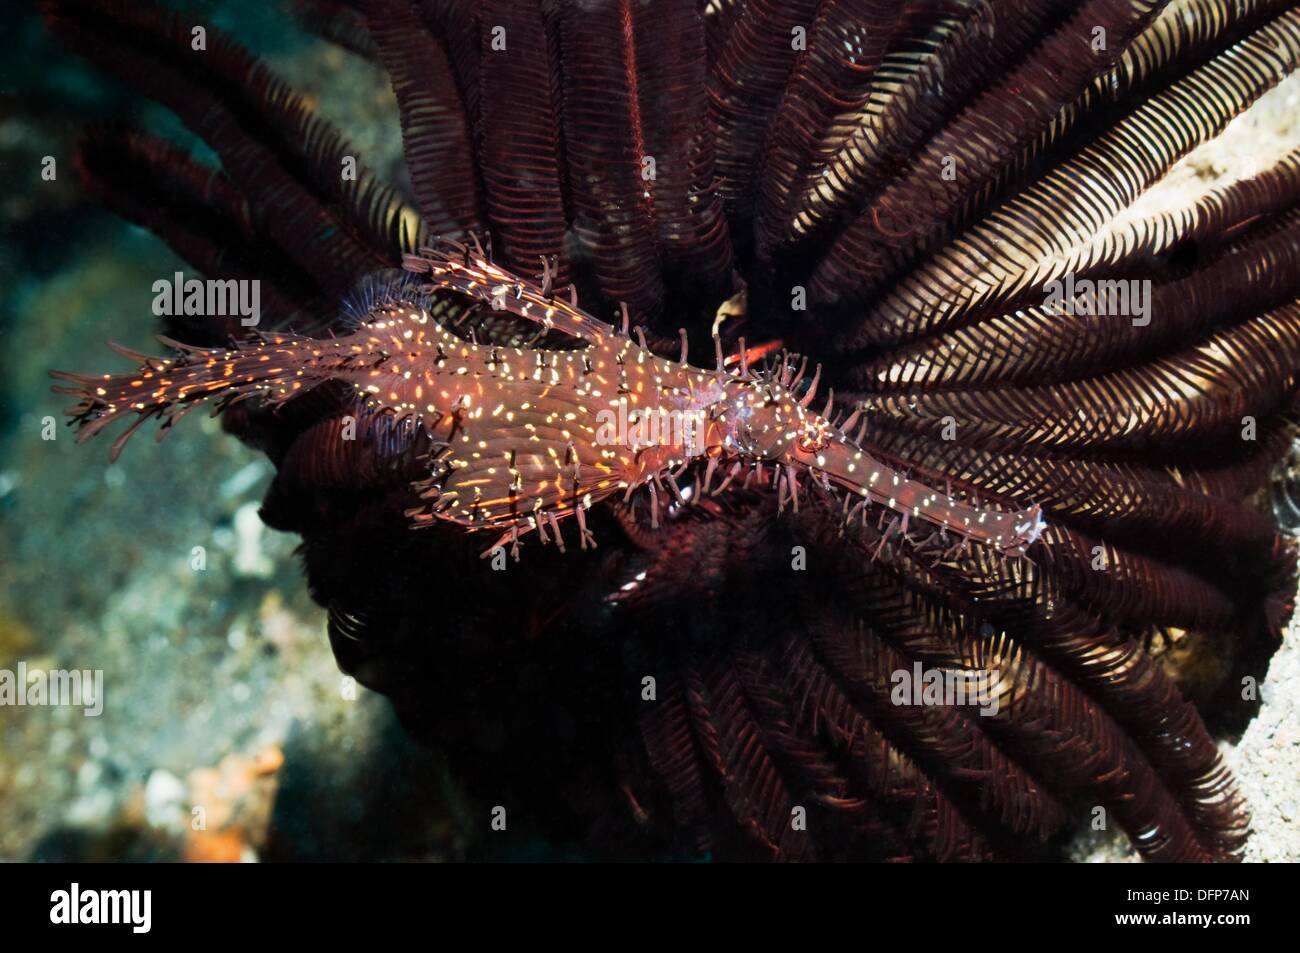 Ornate ghostpipefish Solenostomus paradoxus with featherstar  Rinca, Komodo National Park, Indonesia - Stock Image